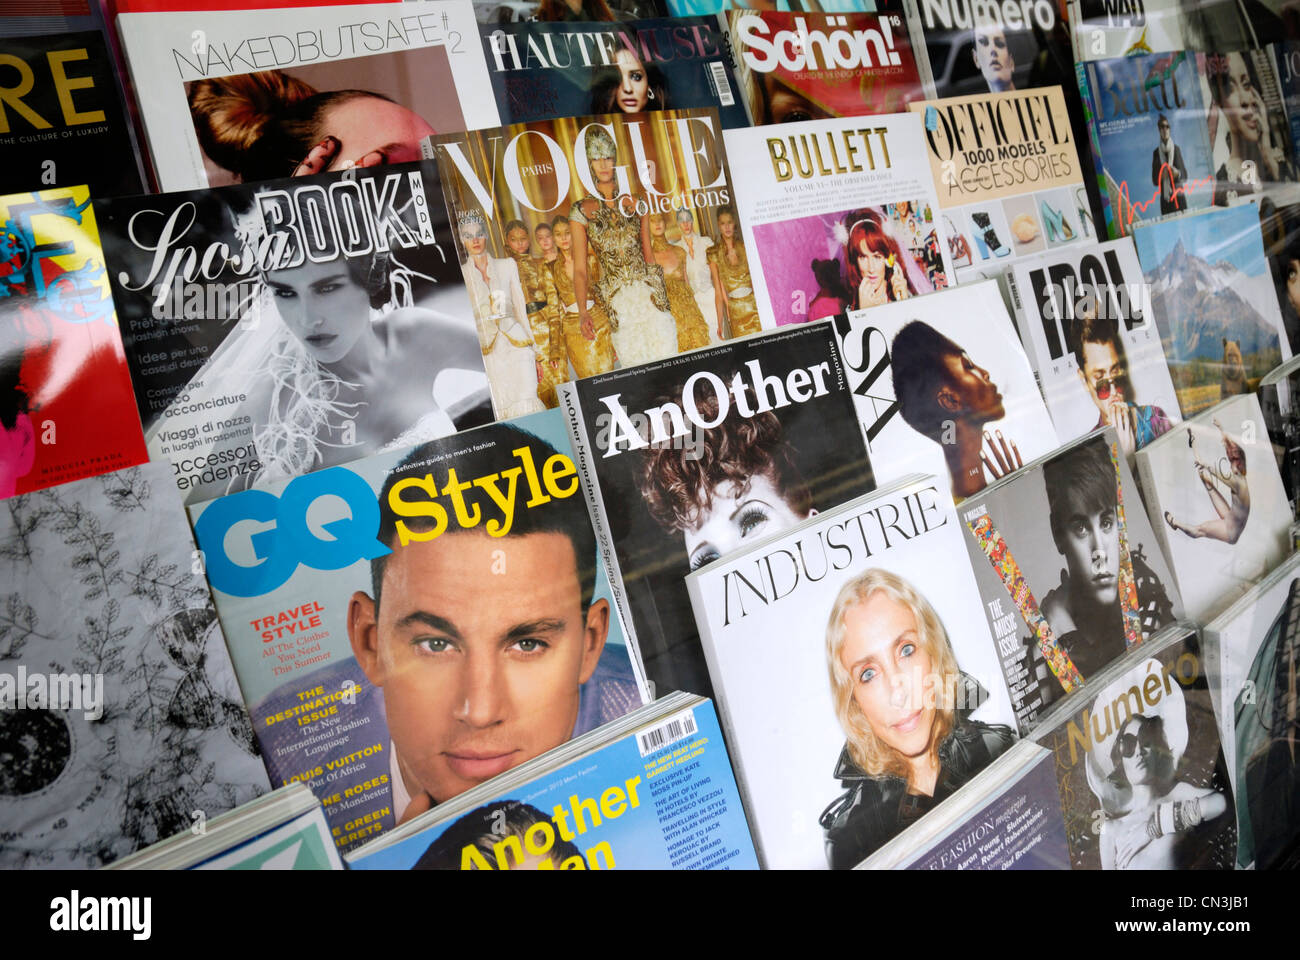 Fashion Magazine Stock Photos & Fashion Magazine Stock Images - Alamy